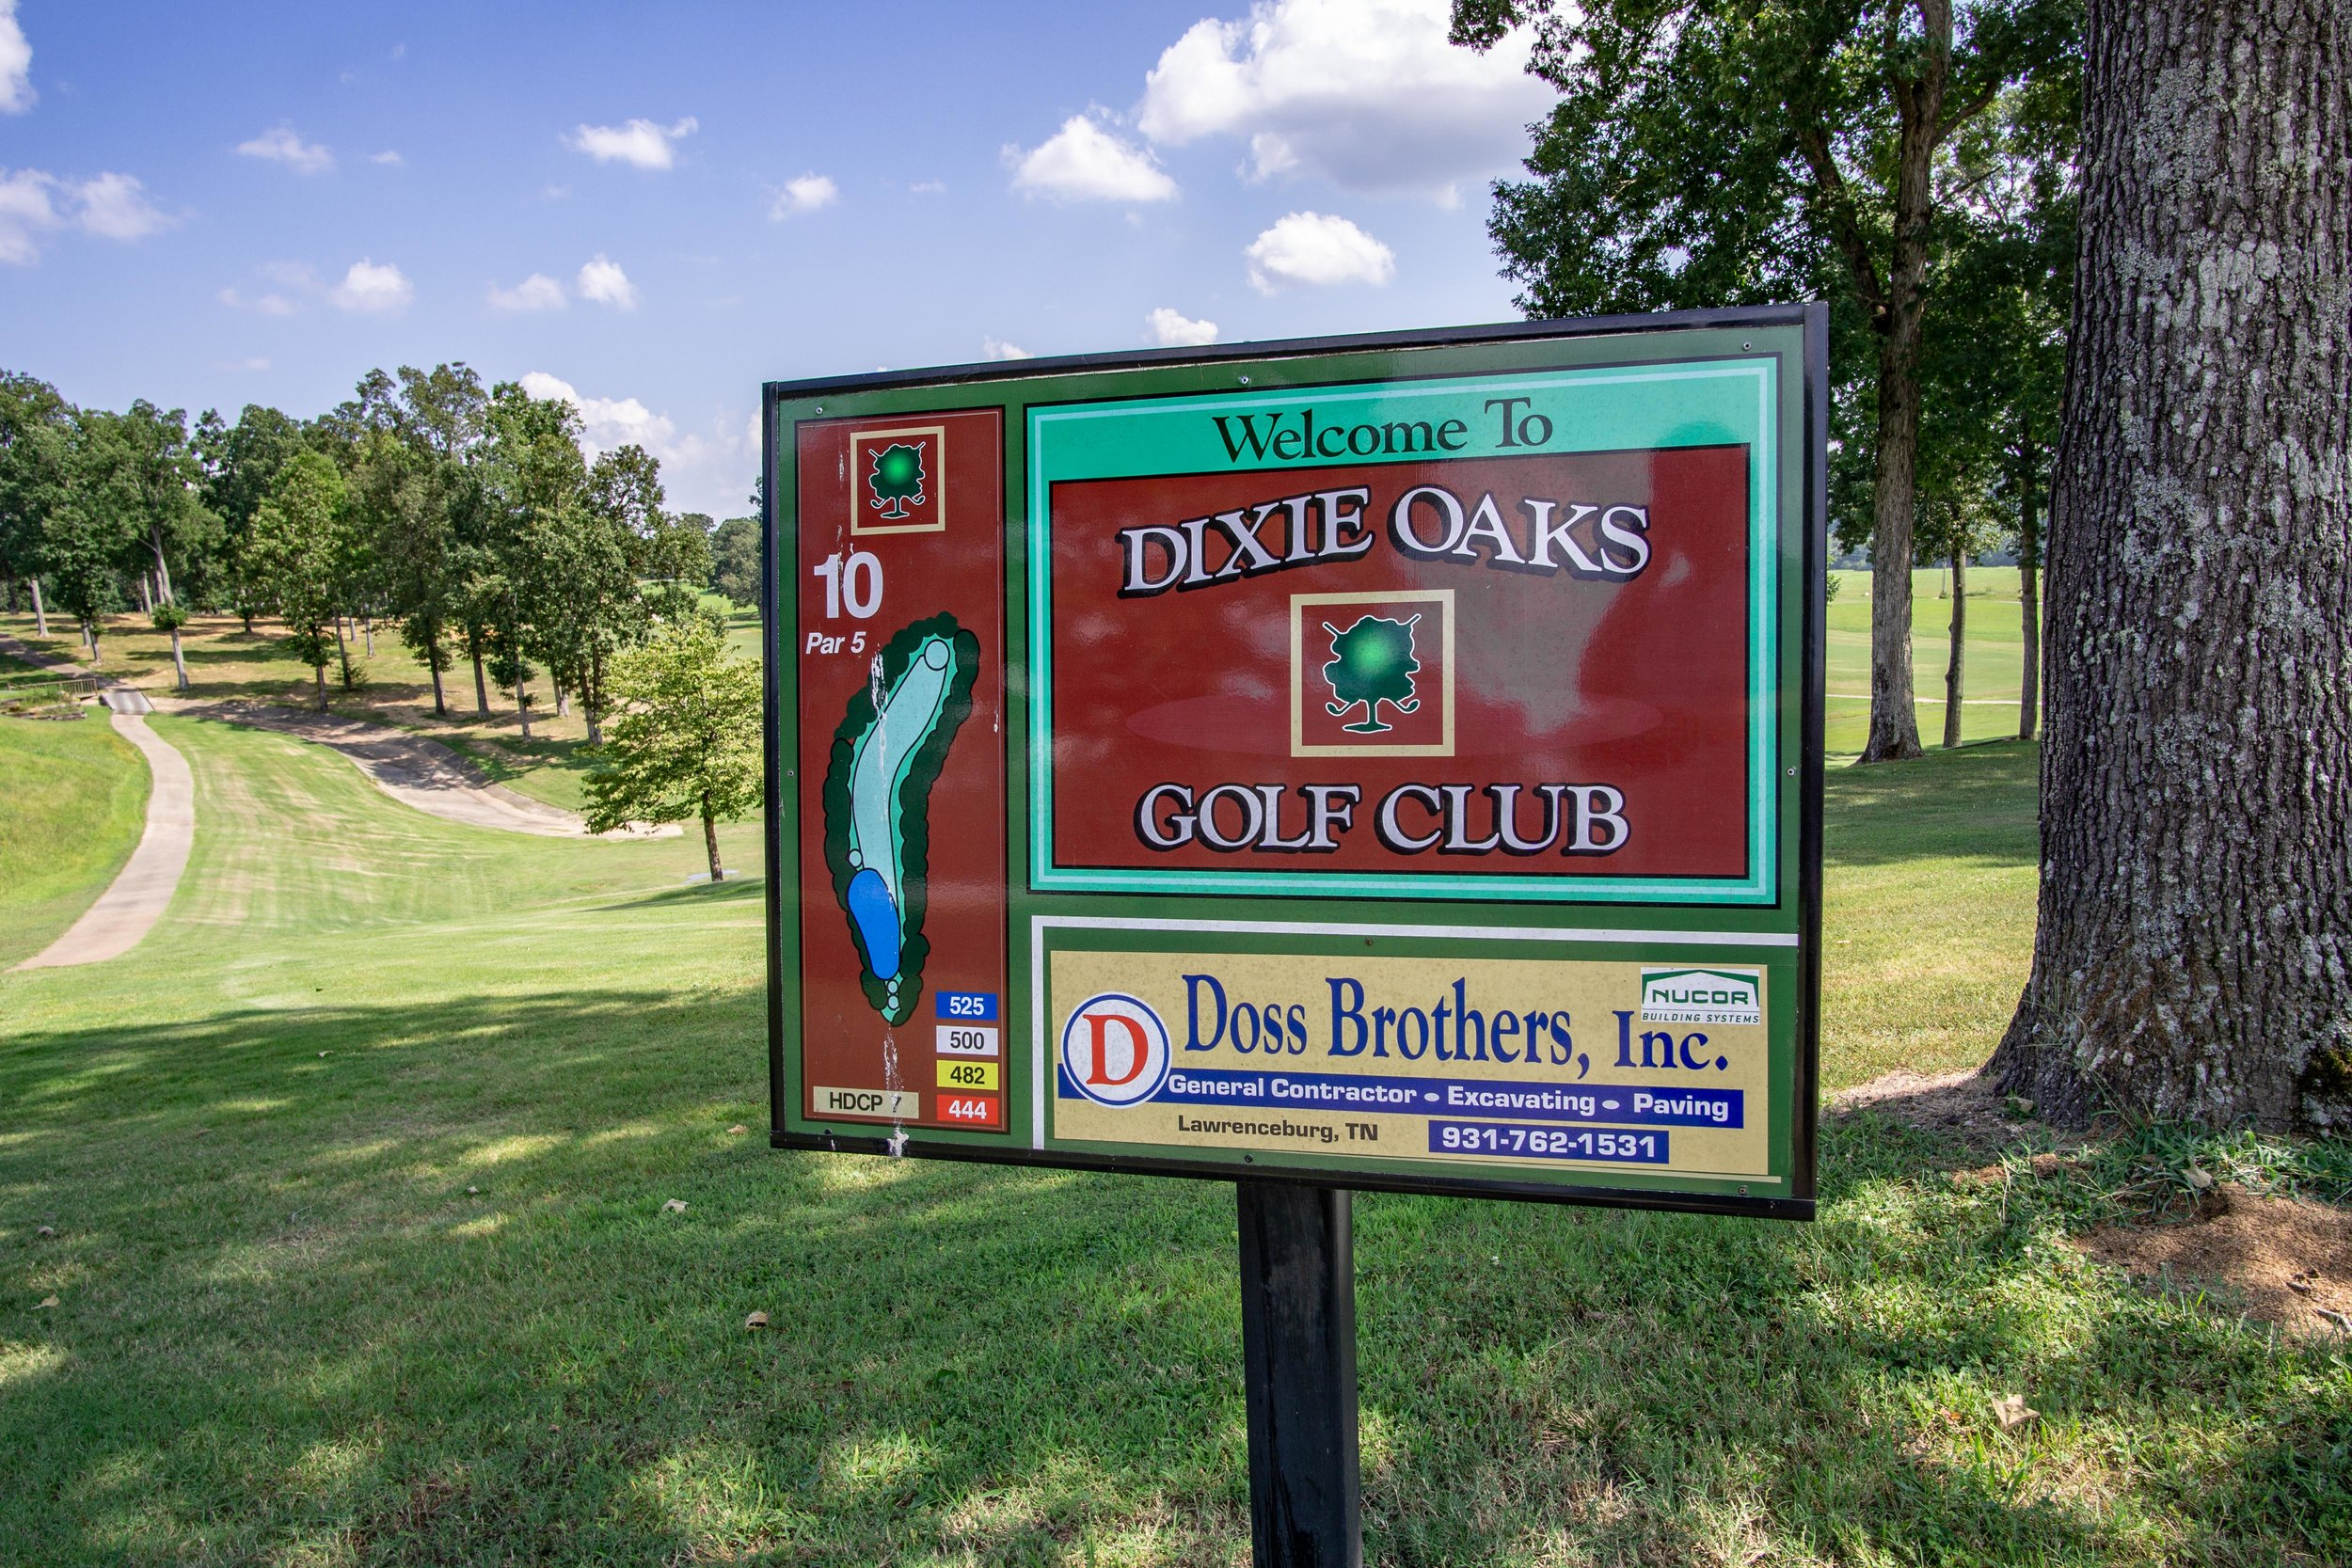 Dixie Oaks Golf Club Summertown TN Real Estate Photographer Pro -4.jpg